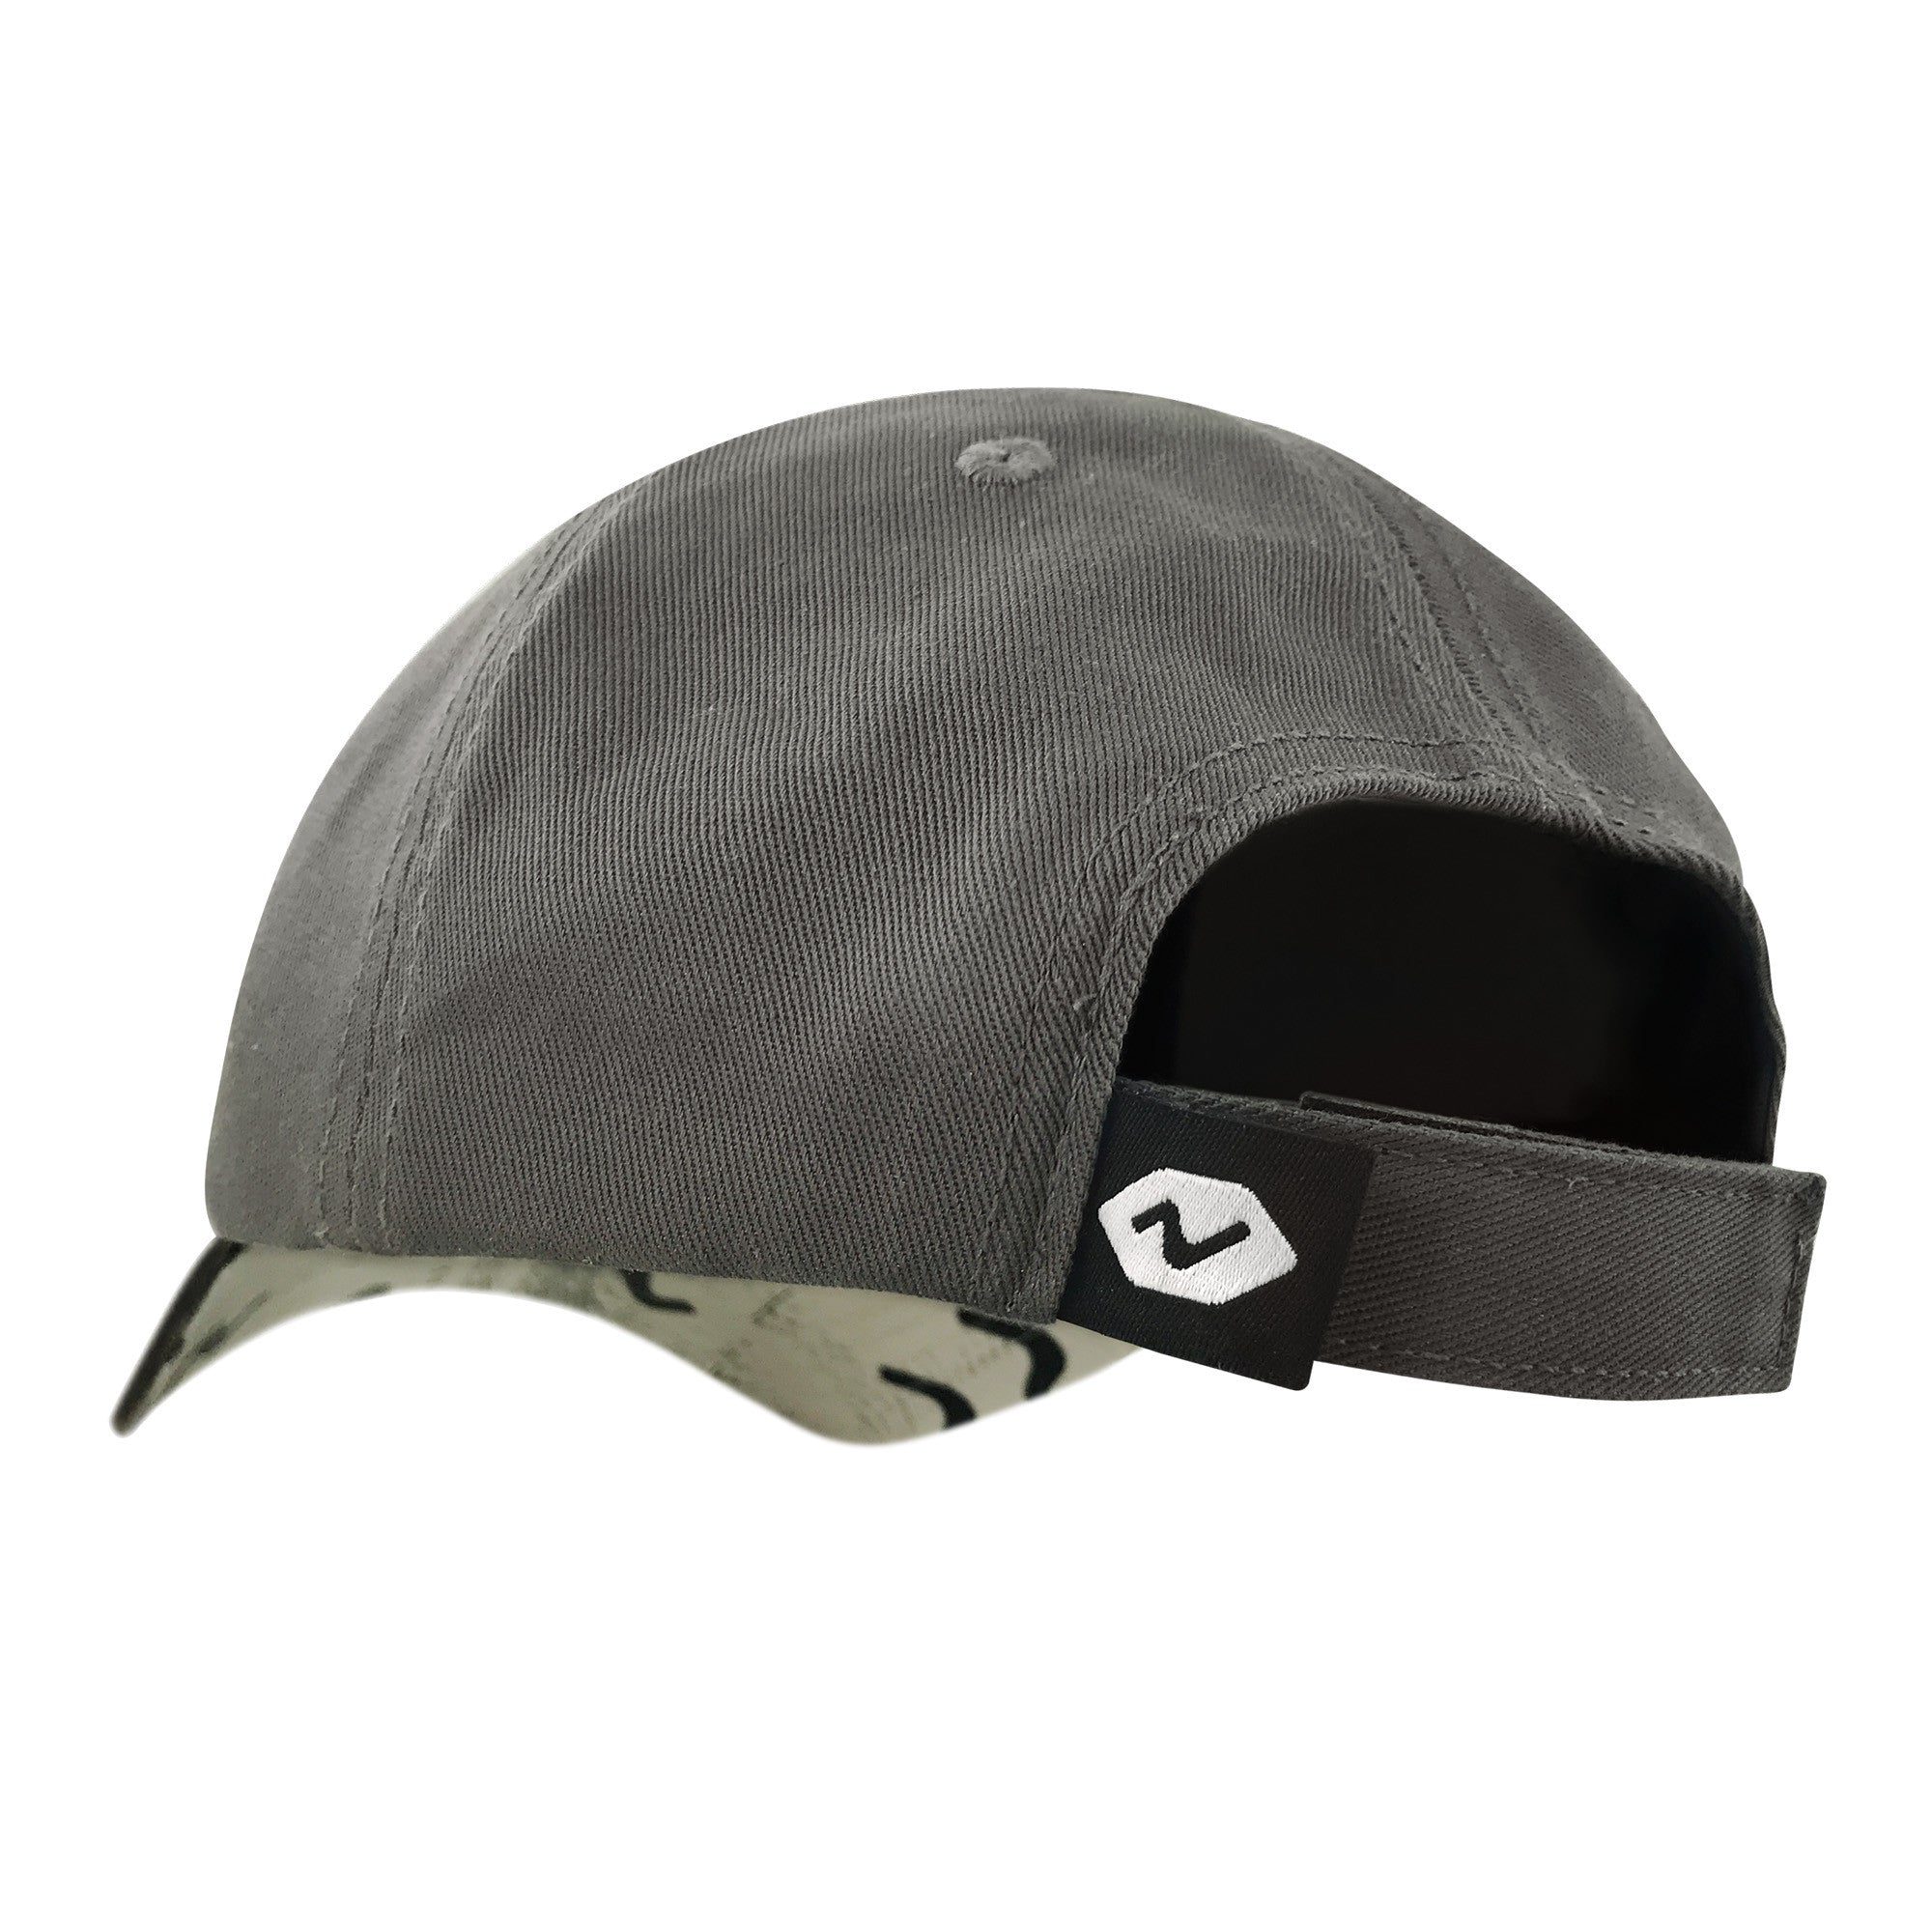 Vibe Hat - Sunset Charcoal